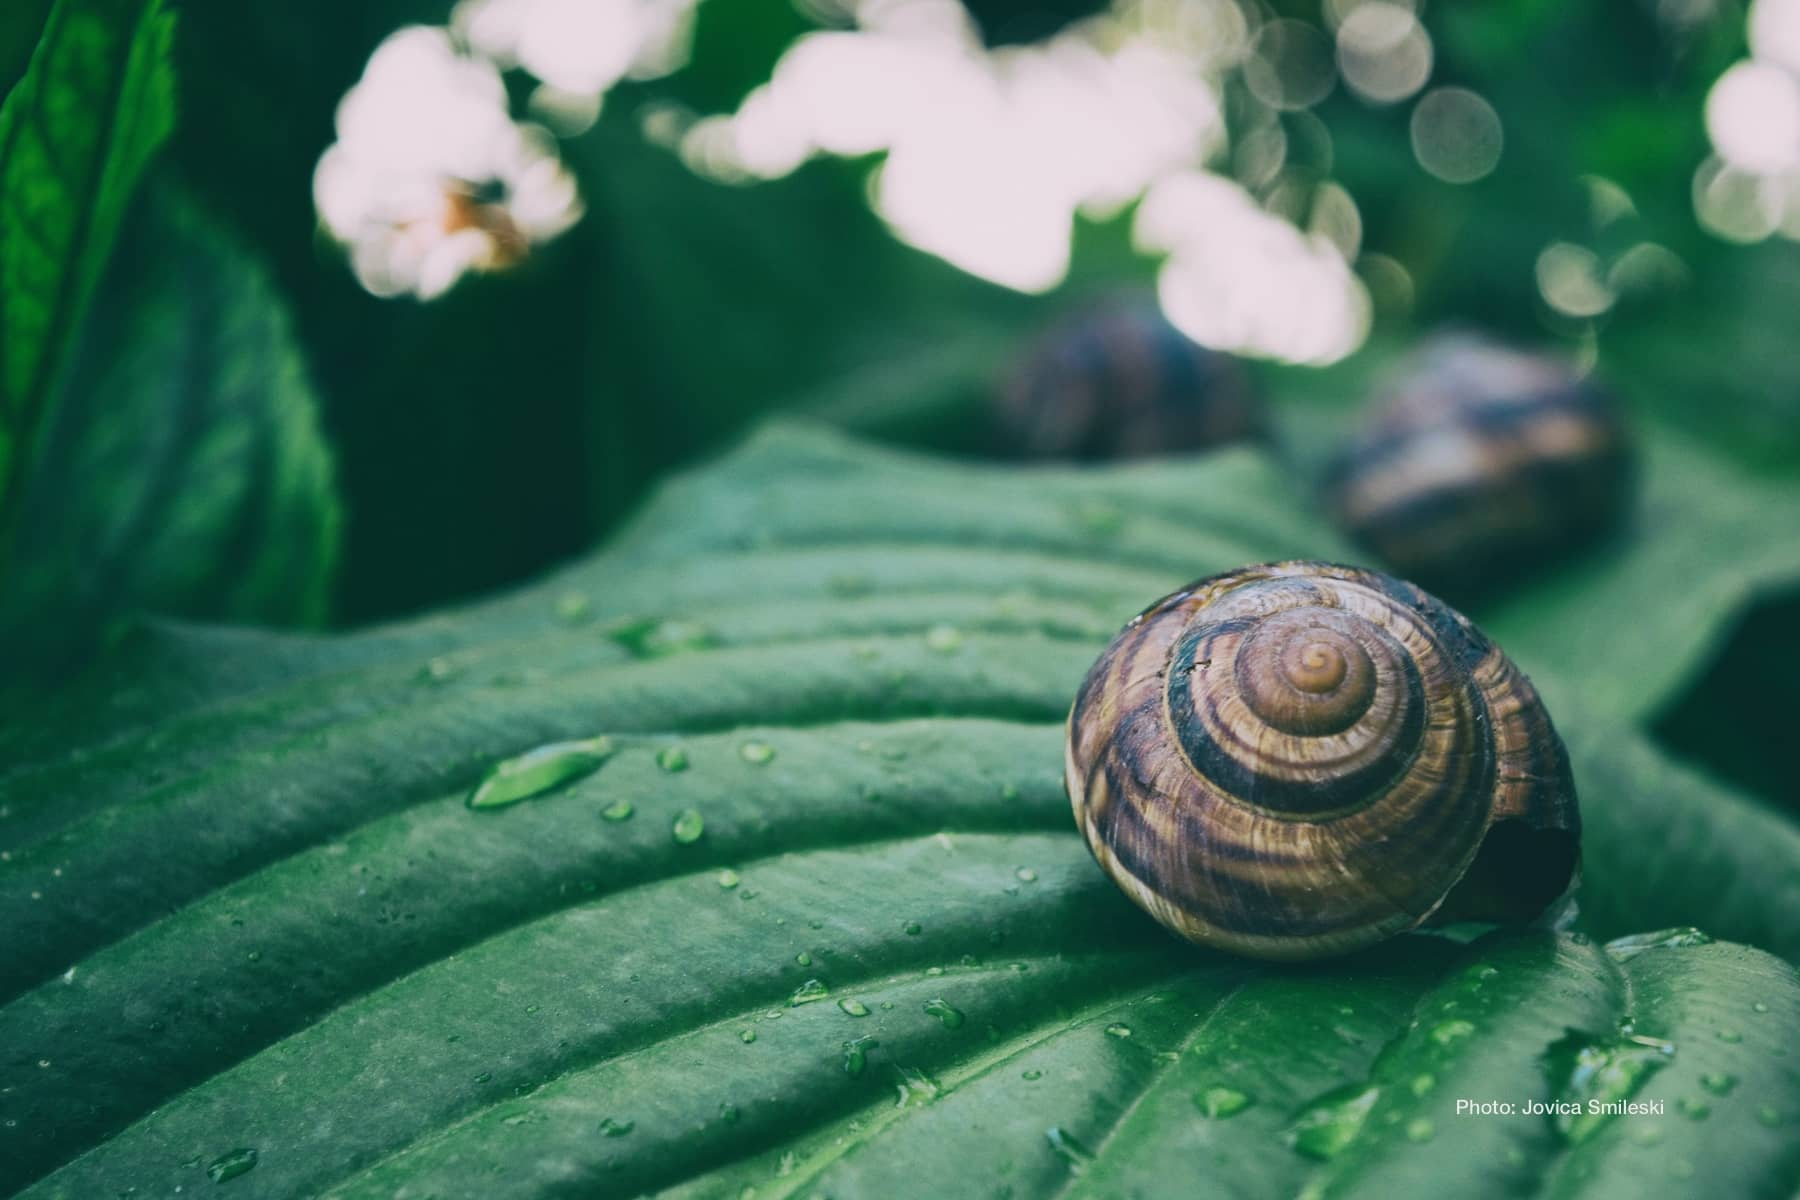 Close-up of snail on wet green leaf